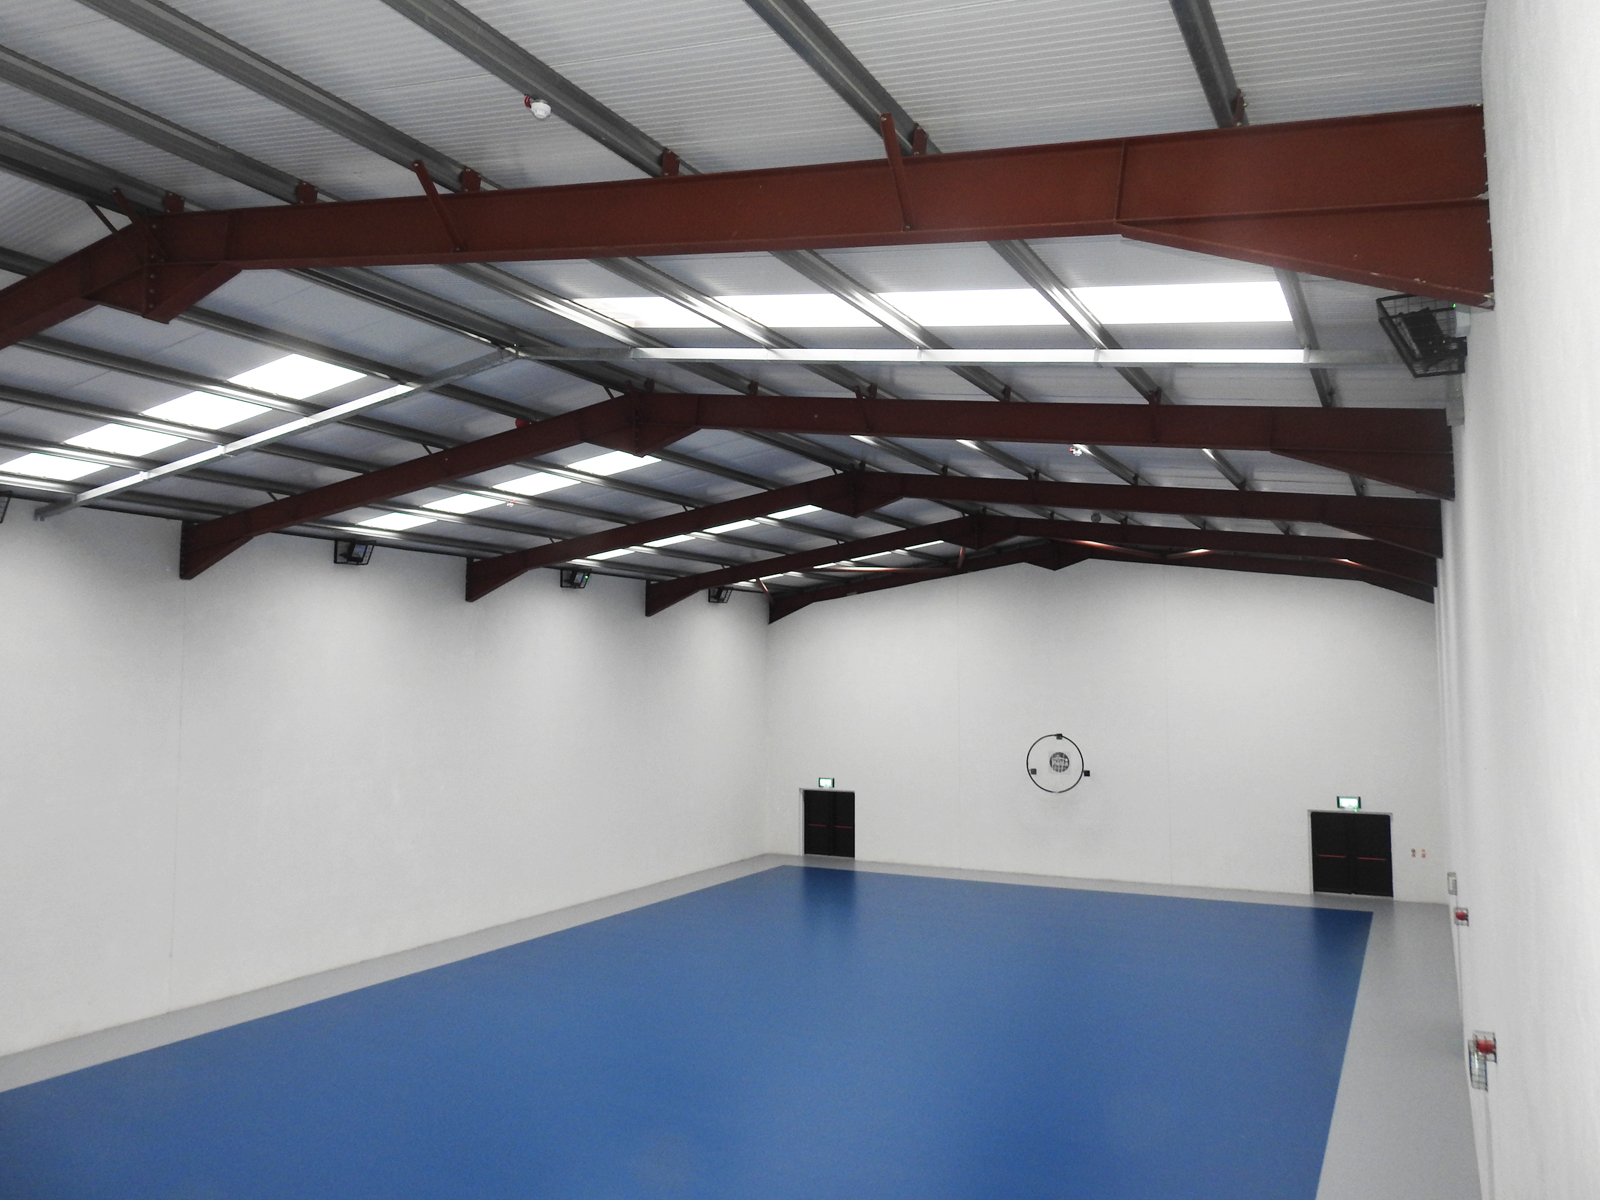 Tourmakeady Sports Centre Structural Design, Setting Out, Planning Permission, Fire Cert and Disability Access Certificate, Lally Chartered Engineers, Mayo, Ireland